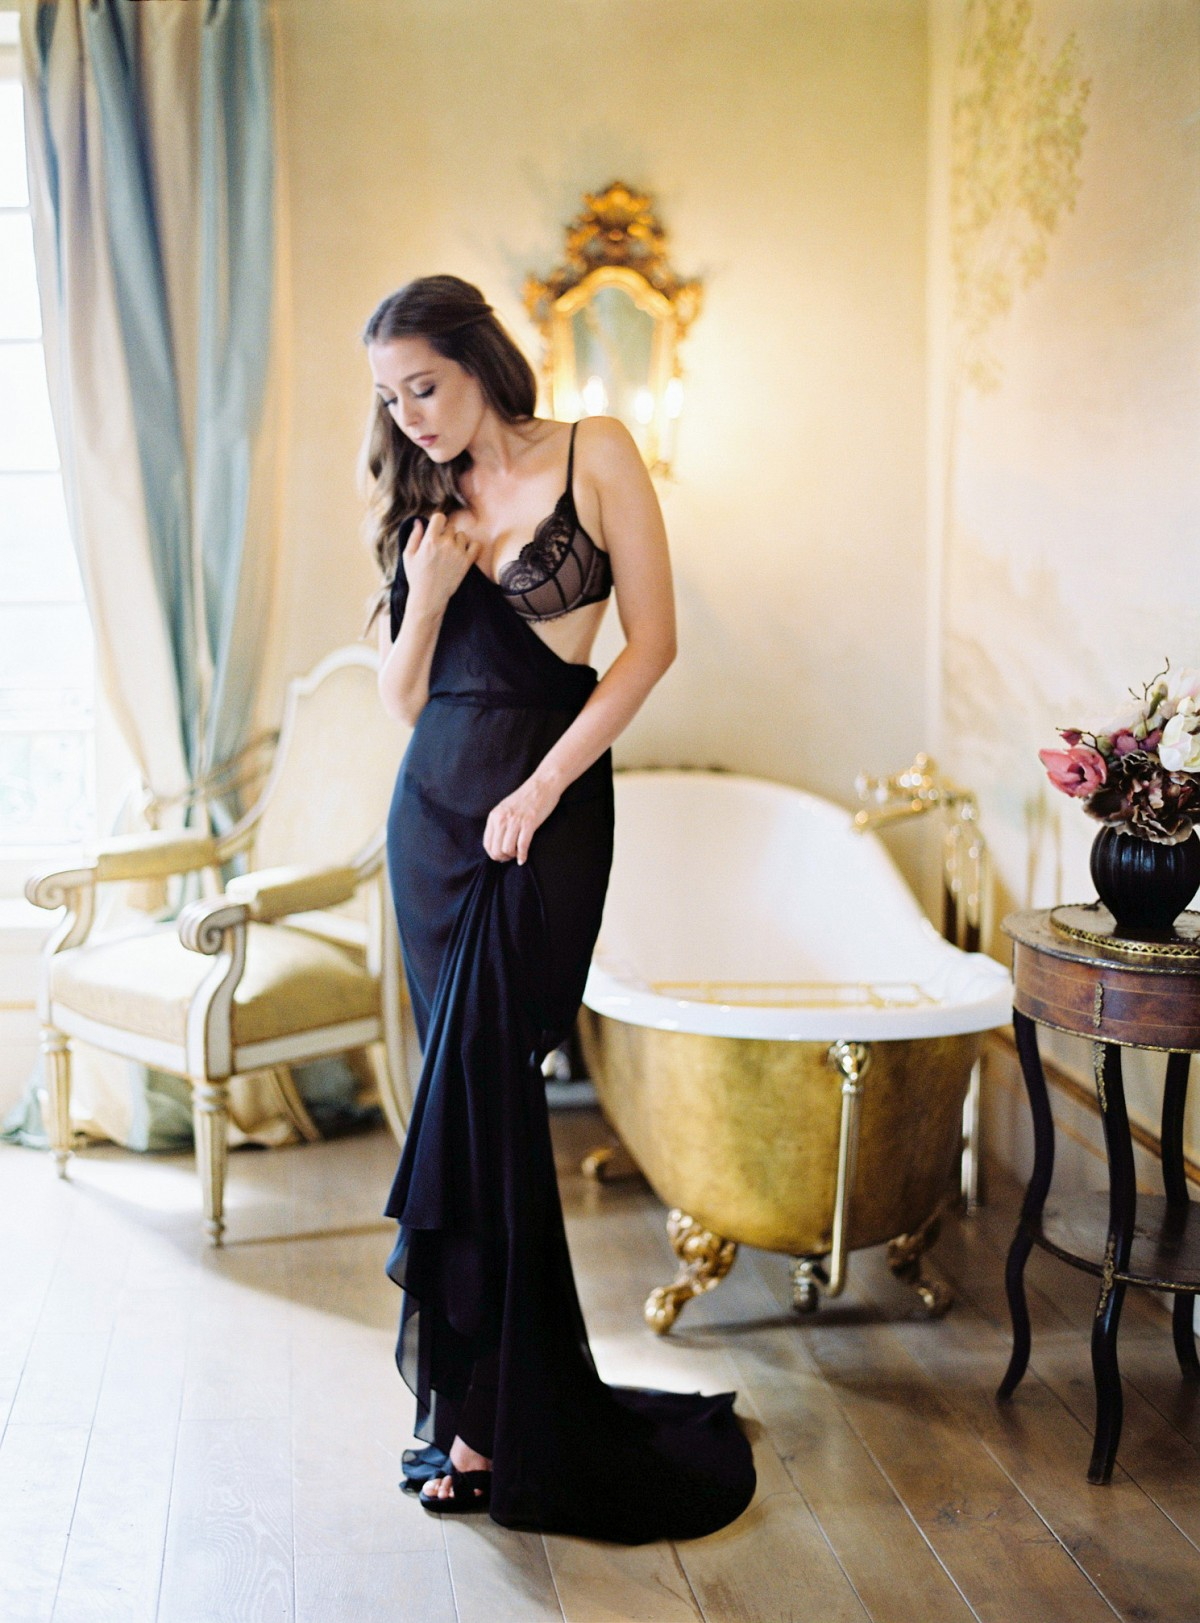 Luxurious Real Boudoir Session in a Tuscan Villa